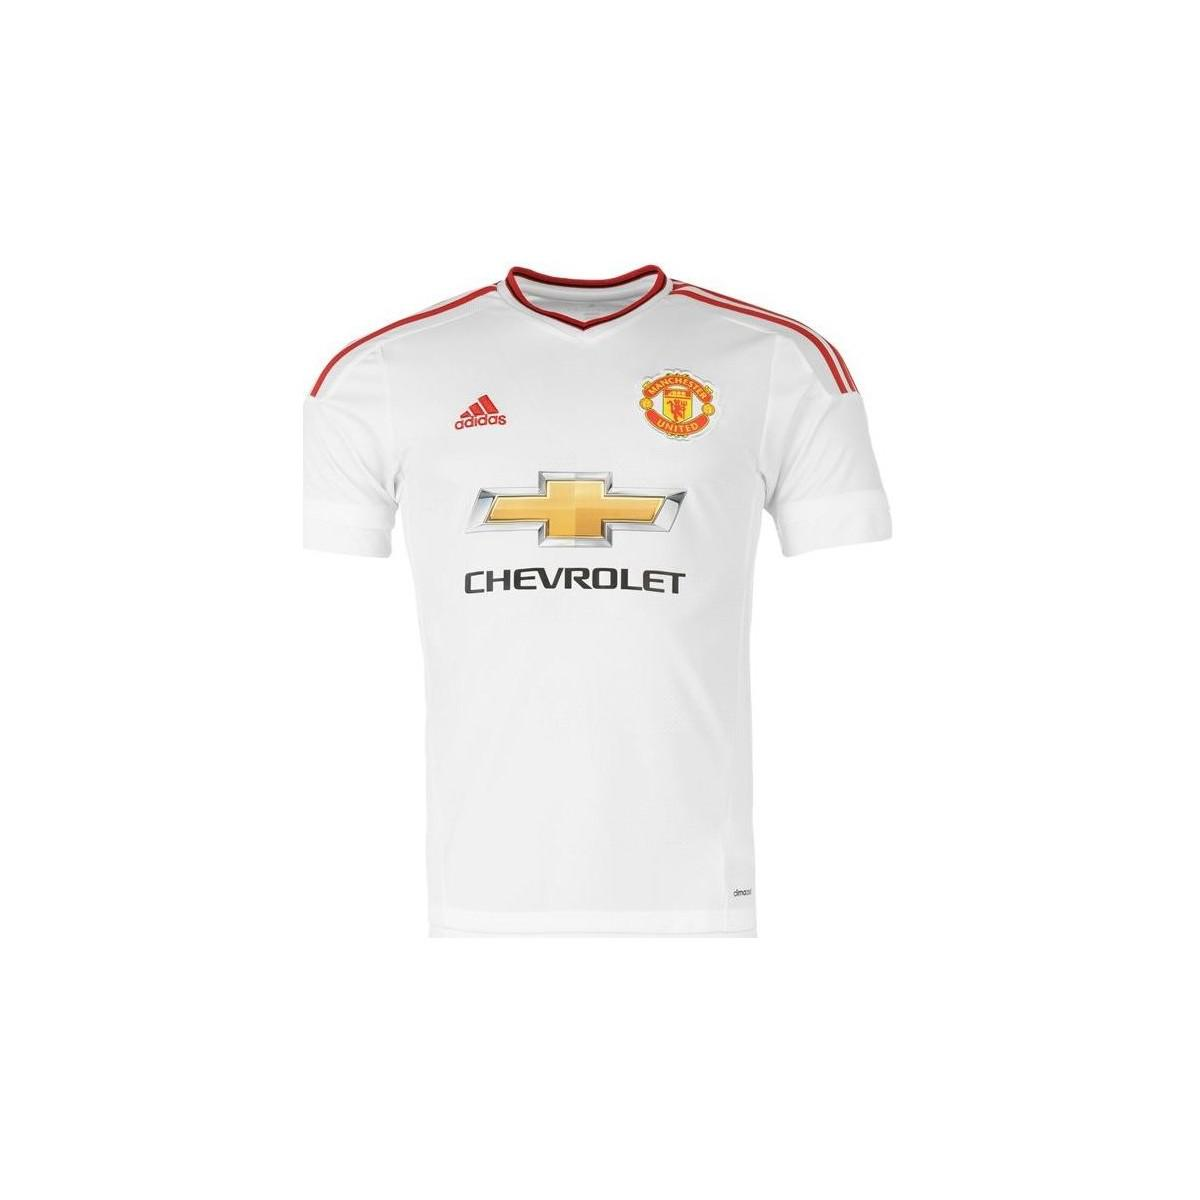 558f6da5207 Adidas - 2015-2016 Man Utd Away Shirt (fellaini 27) - Kids Women s. View  fullscreen